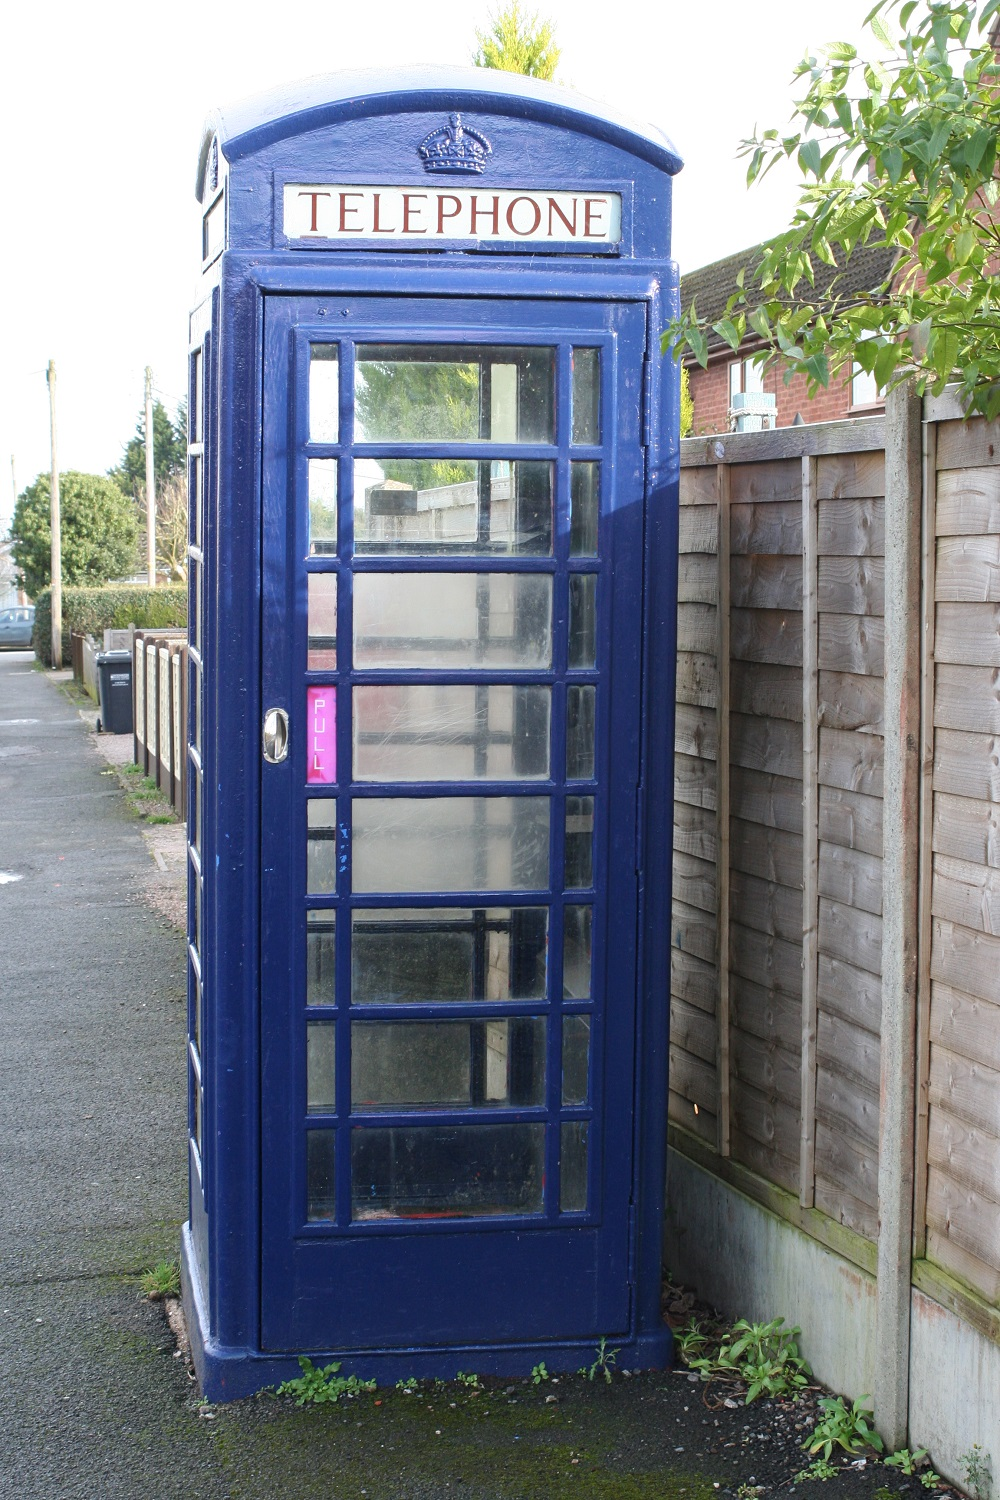 Mystery of blue phonebox in village solved